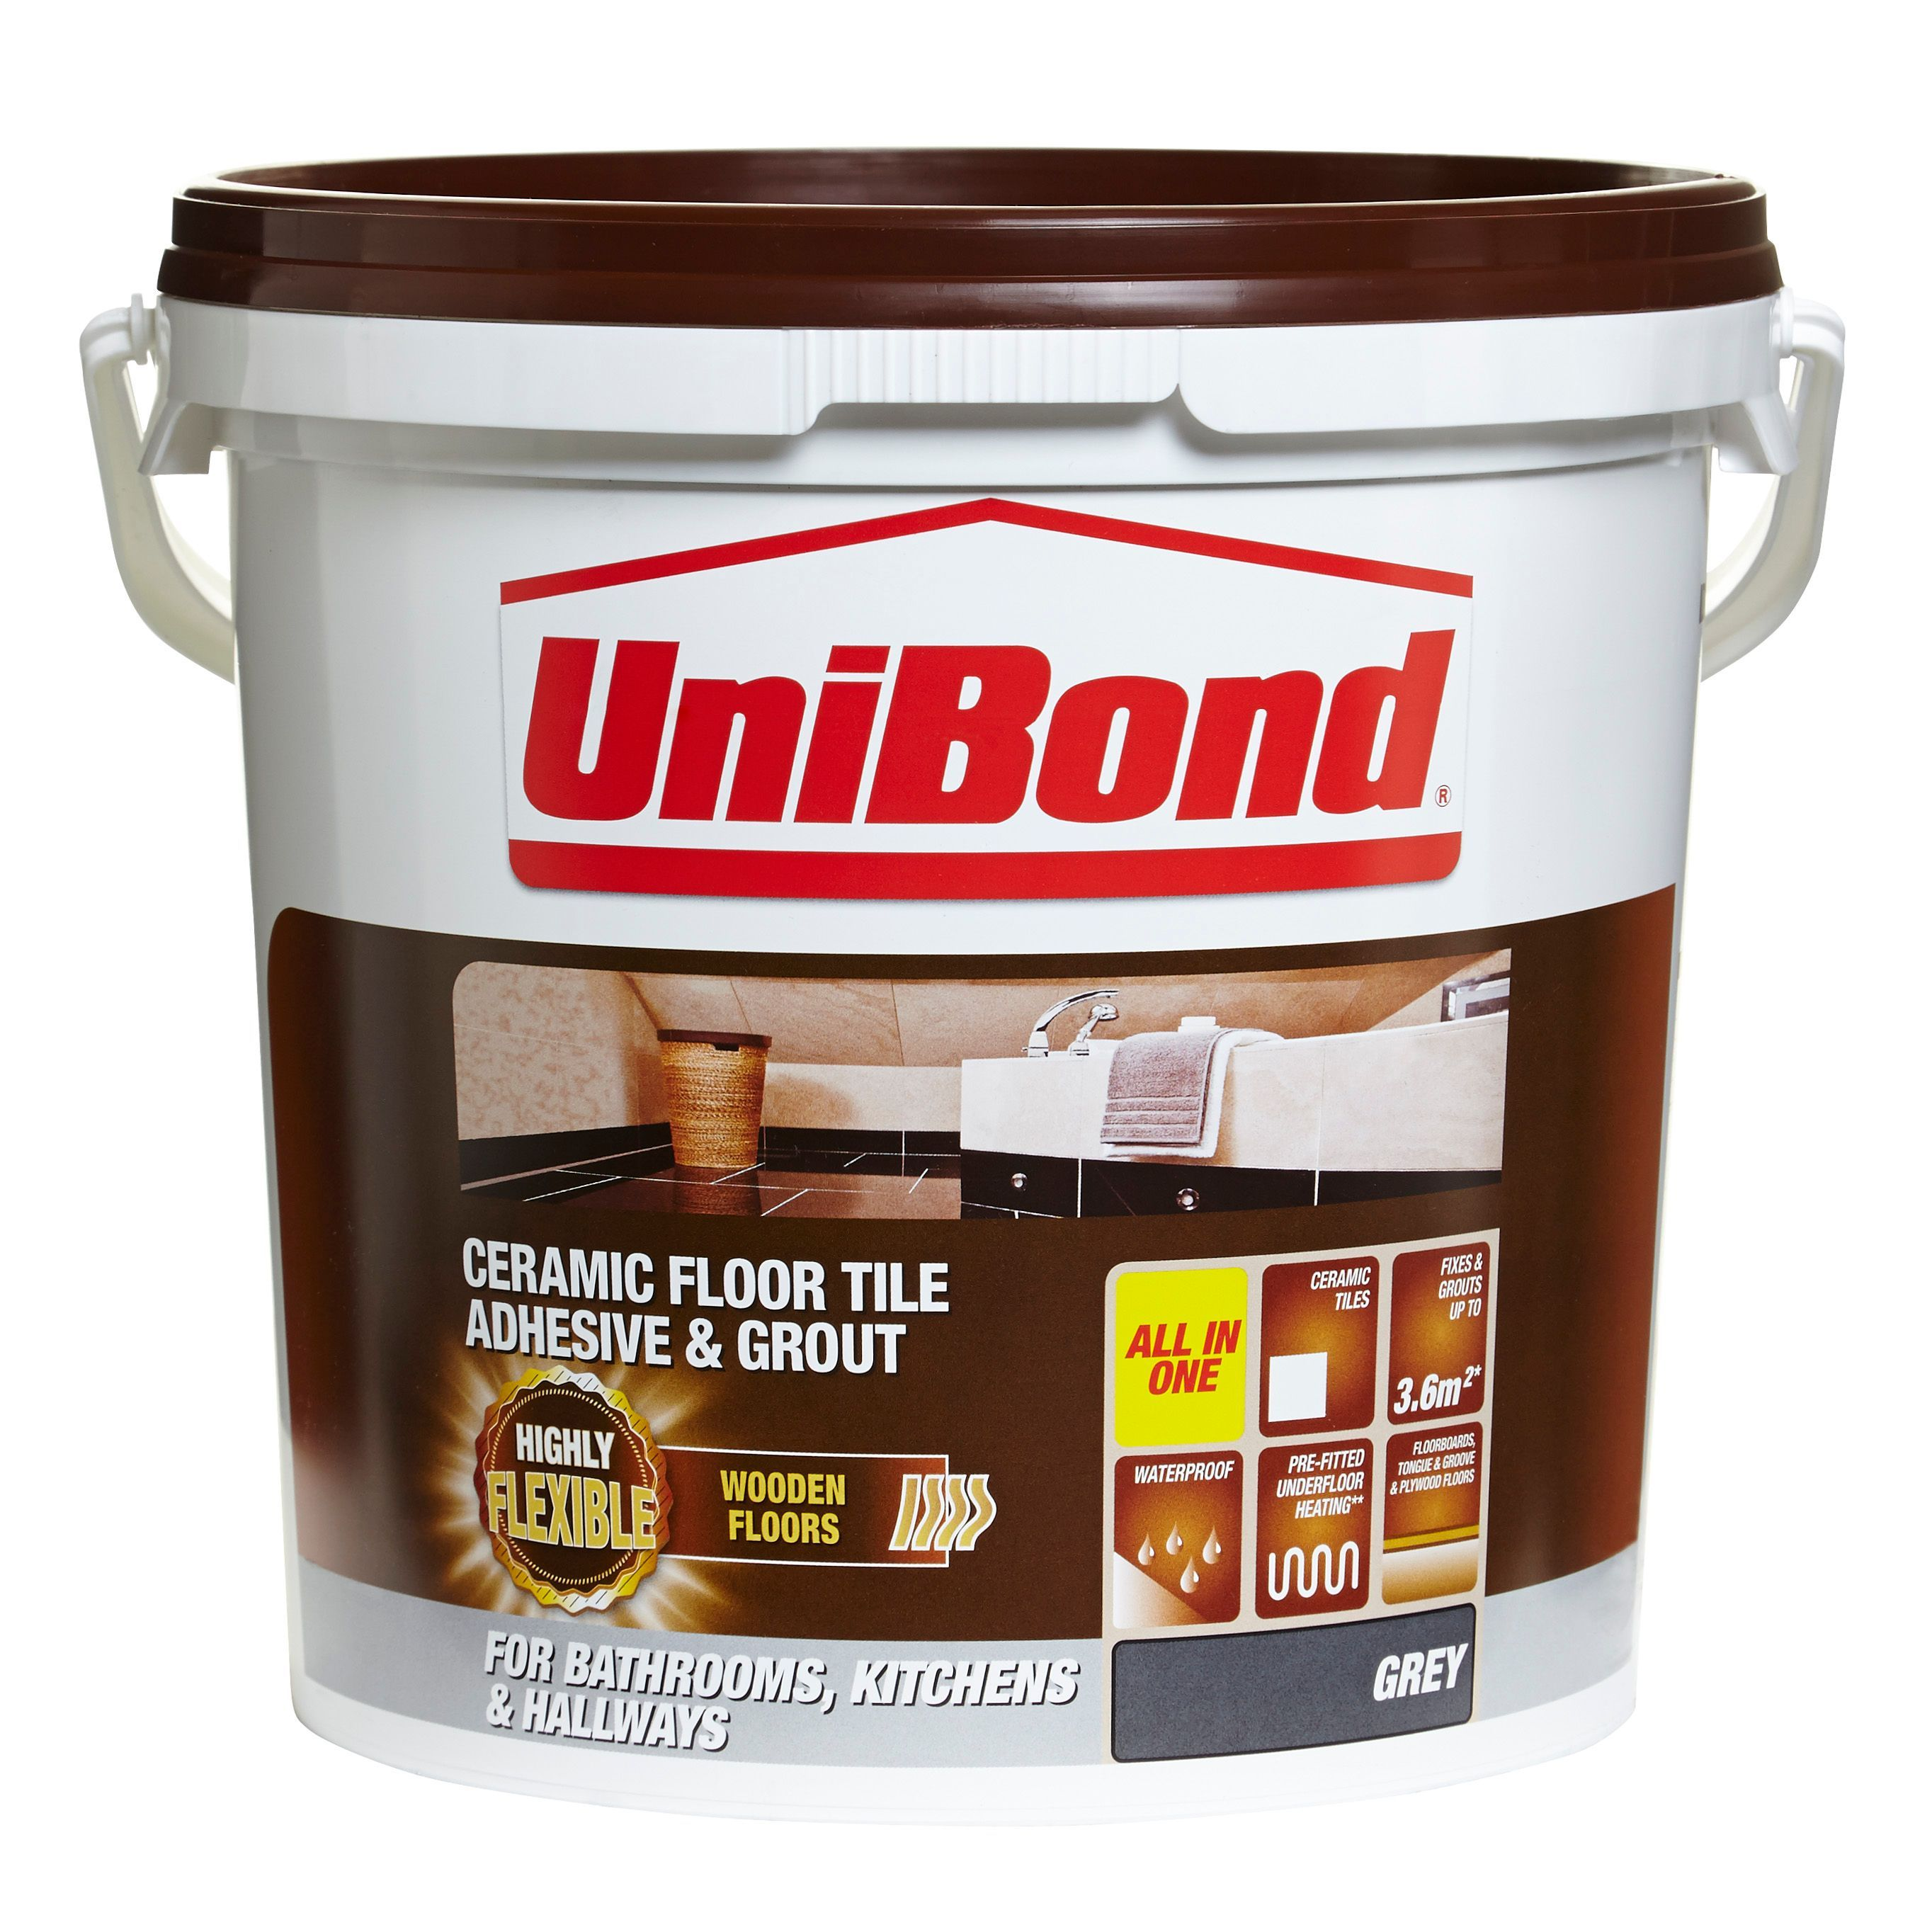 Unibond ready to use floor tile adhesive grout grey 143kg unibond ready to use floor tile adhesive grout grey 143kg departments dailygadgetfo Images